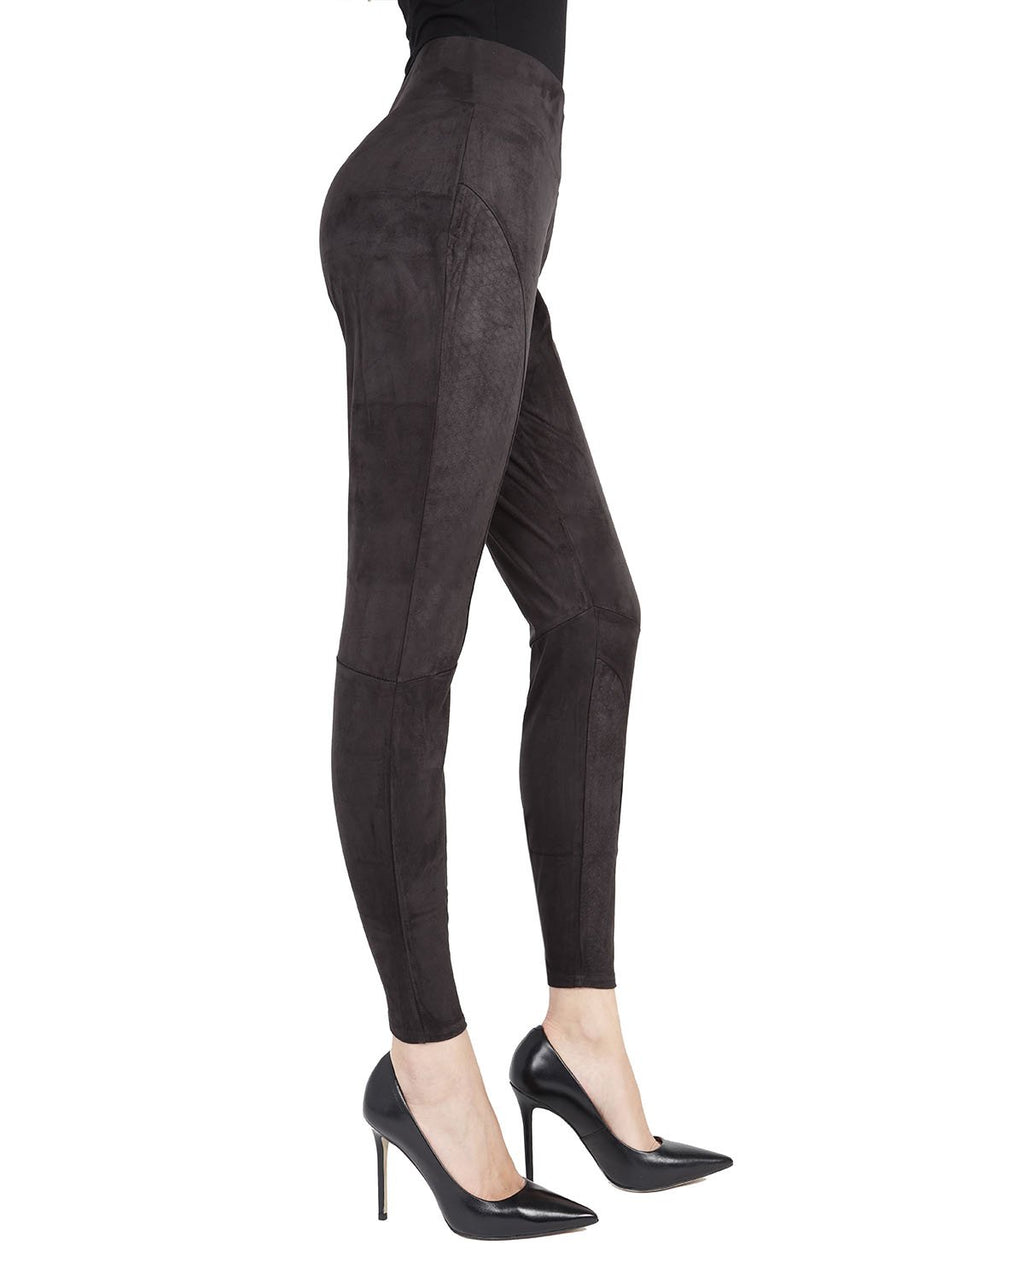 Memoi Black Ante suede Feel Shaping Legging | Women's Hosiery - Premium Leggings